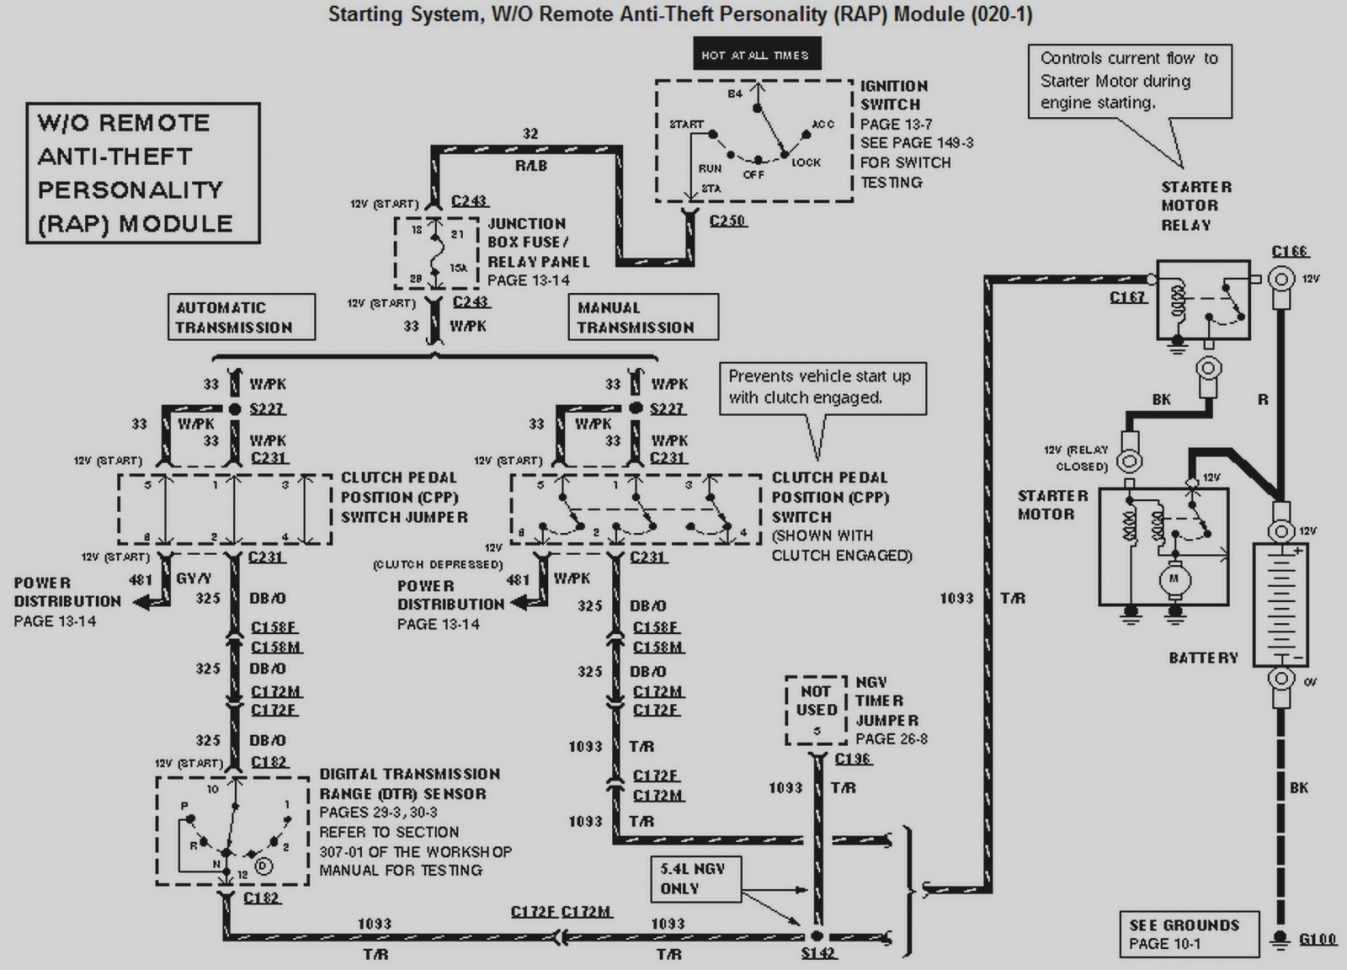 02 Bass Tracker Boat Wiring Diagram - best fusebox and wiring diagram  device-methods - device-methods.lesmalinspres.fr | Bass Tracker Wiring Harness |  | device-methods.lesmalinspres.fr